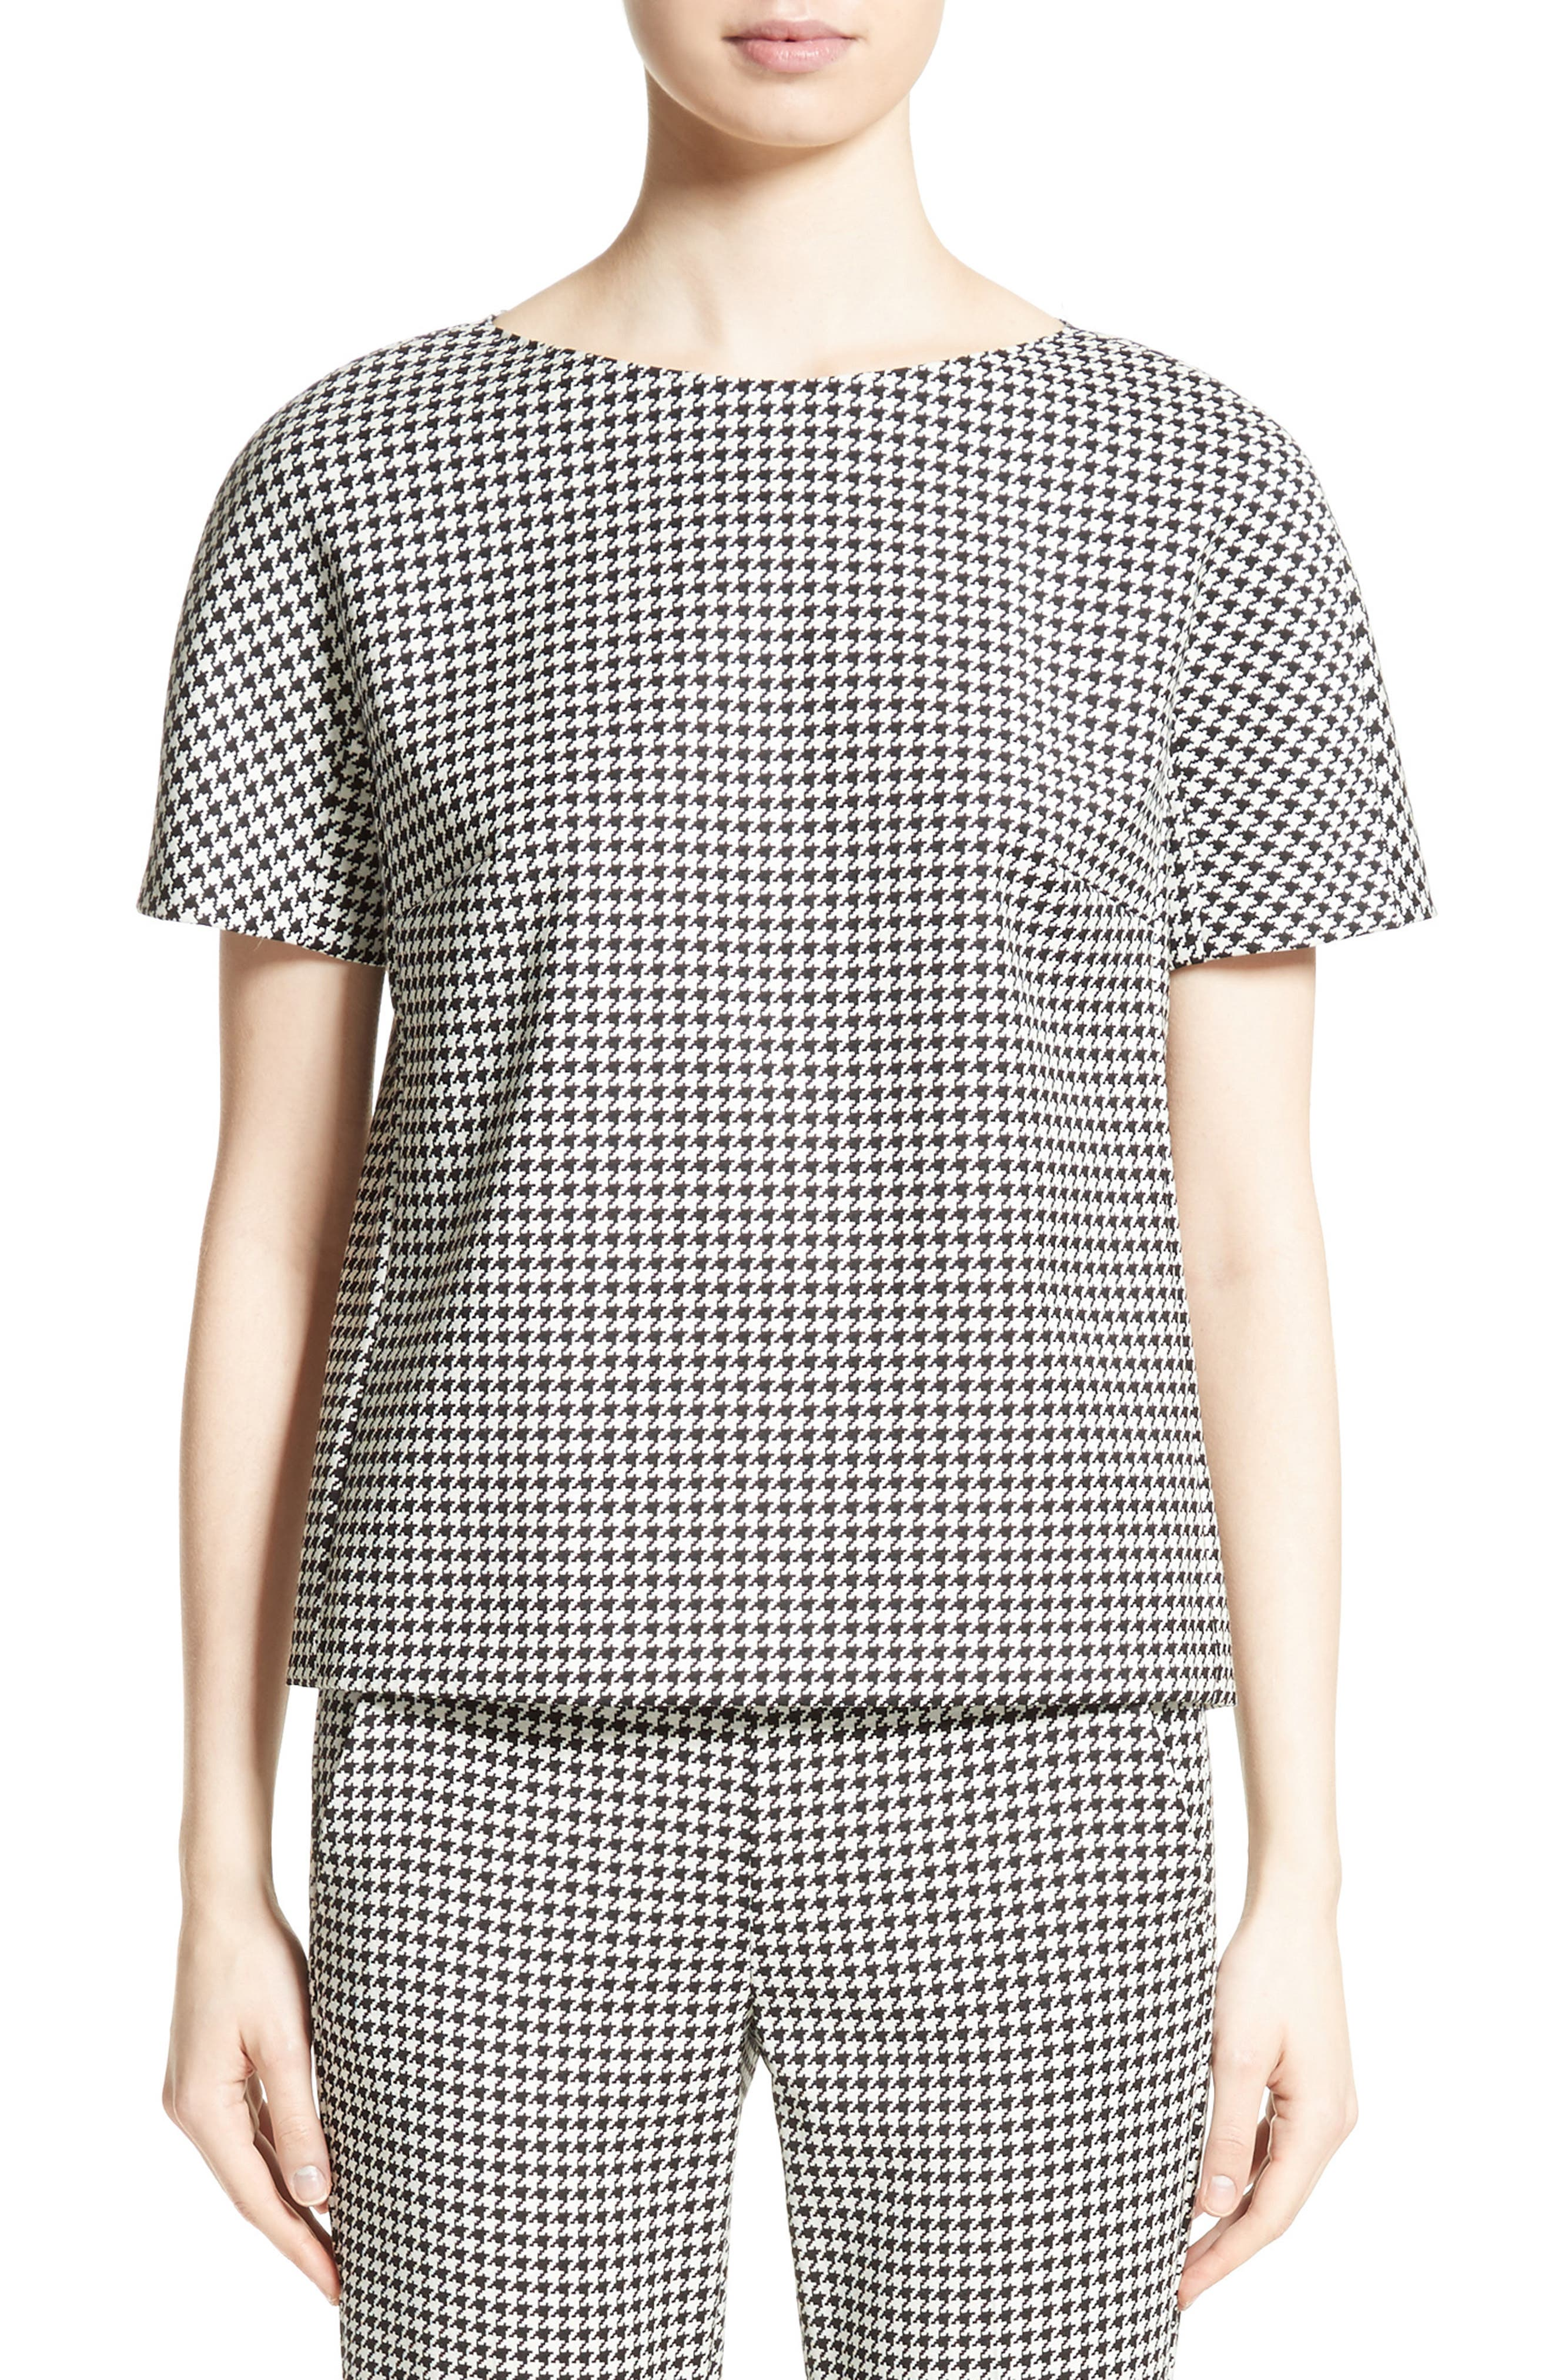 Alternate Image 1 Selected - Max Mara Ares Wool Blend Houndstooth Top